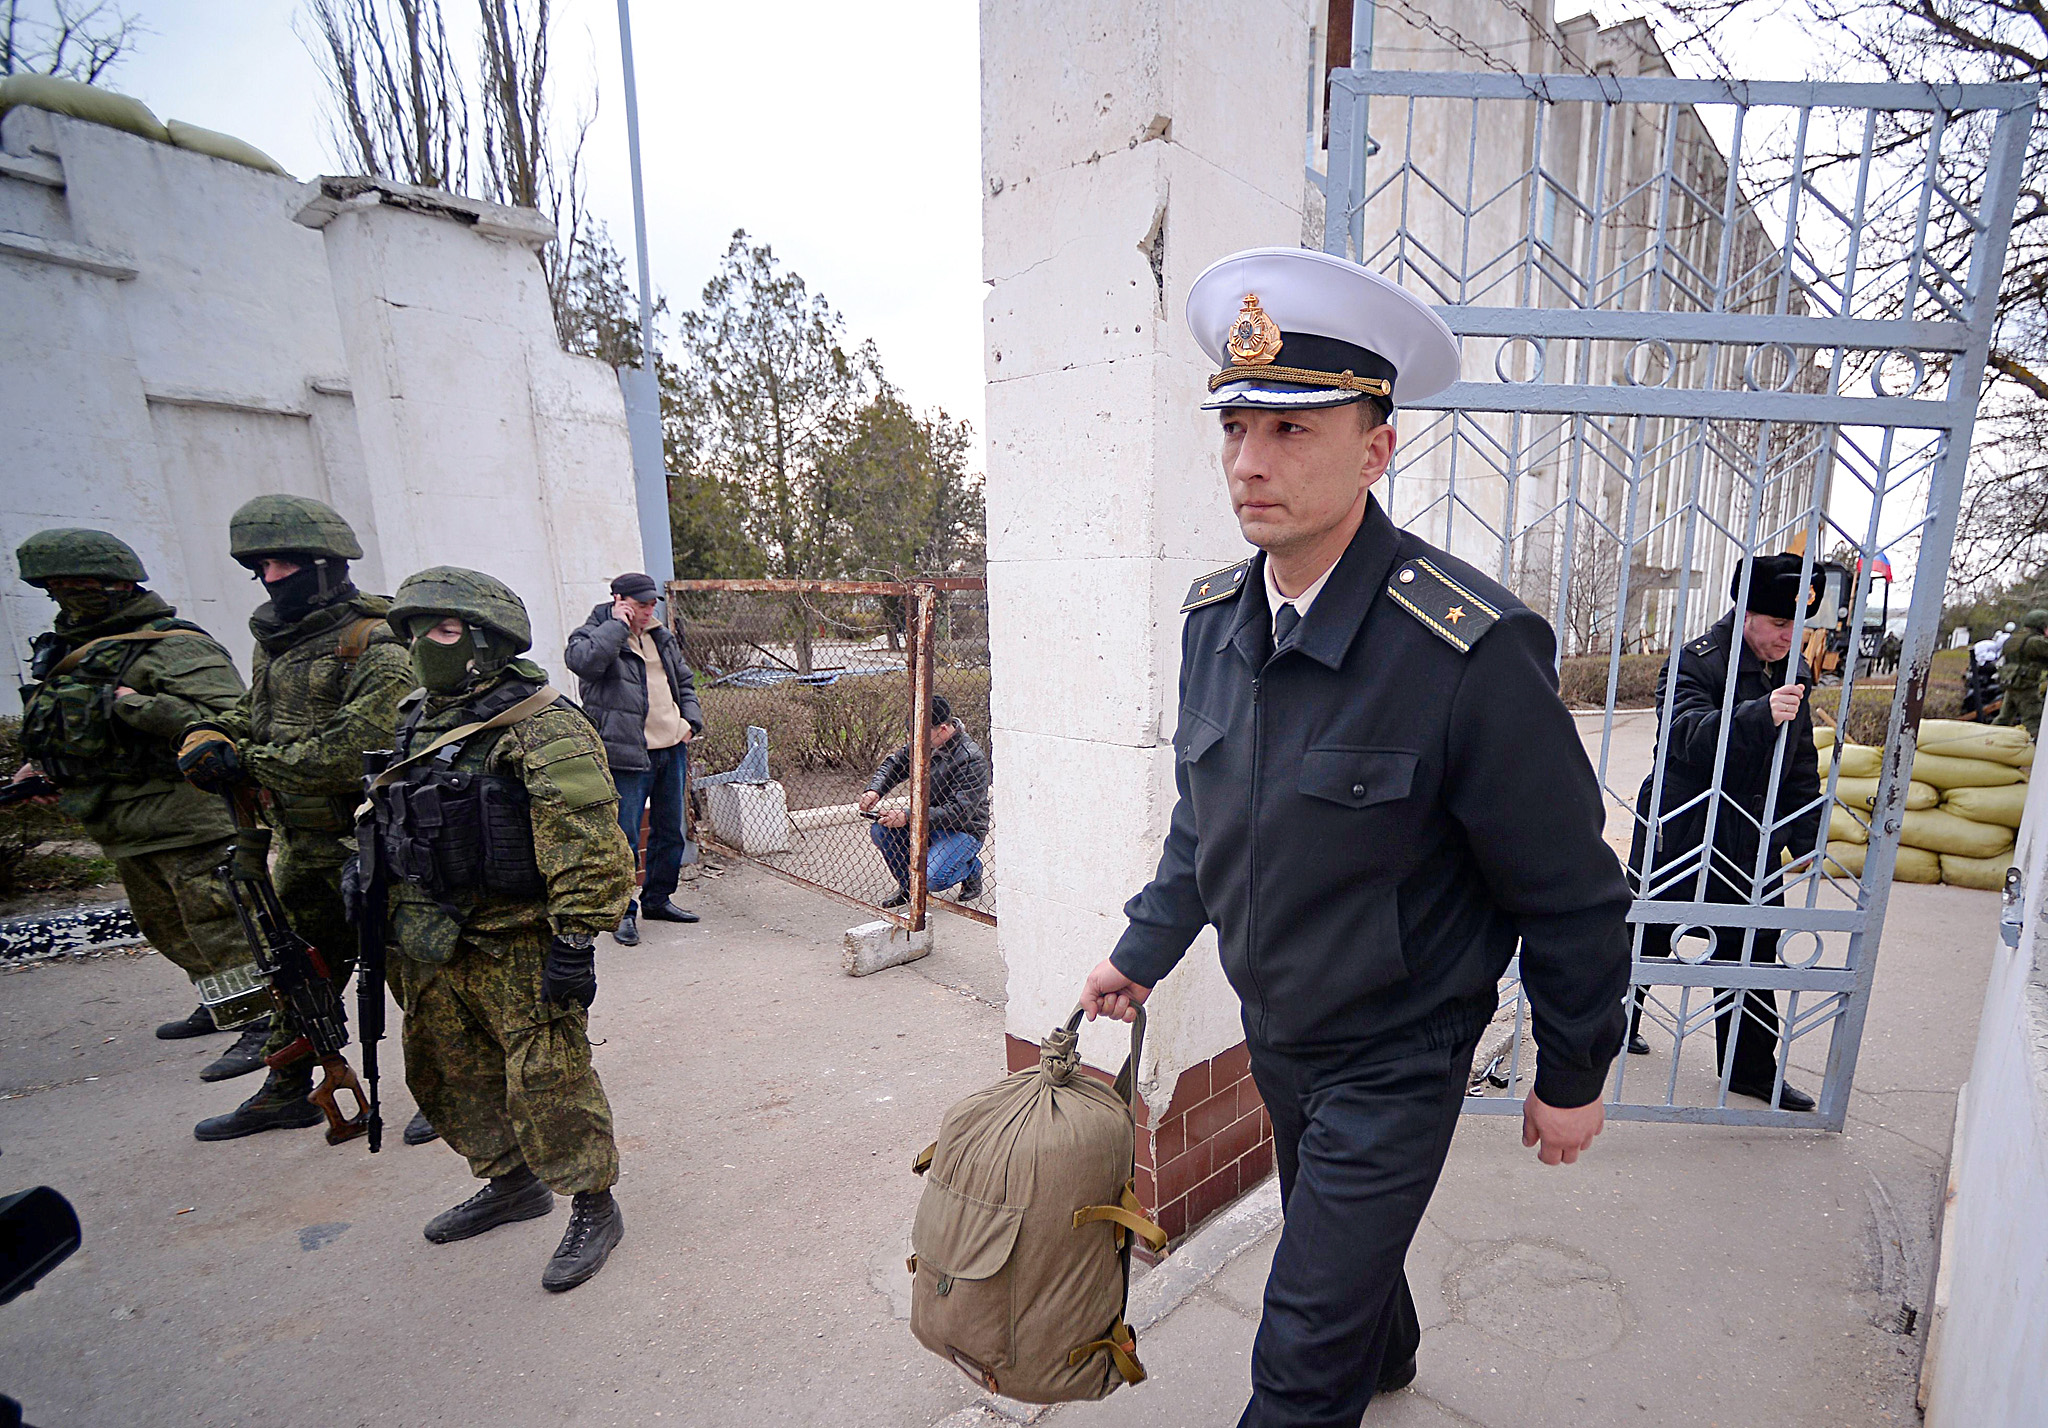 A Ukrainian officer leaves as Russian so...A Ukrainian officer leaves as Russian soldiers stand guard after they took control of the Ukrainian navy south headquarters base in Novoozerne on March 19, 2014. Russian forces seized control of a second Ukrainian navy base in western Crimea on March 19, hours after capturing the main navy headquarters in Sevastopol. Some 50 Ukrainian servicemen were seen filing out of the base at Novoozerne as Russian soldiers stood by, while pro-Moscow militants raised the Russian flag over the base.  AFP PHOTO/ Filippo MONTEFORTE FILIPPO MONTEFORTE/AFP/Getty Images